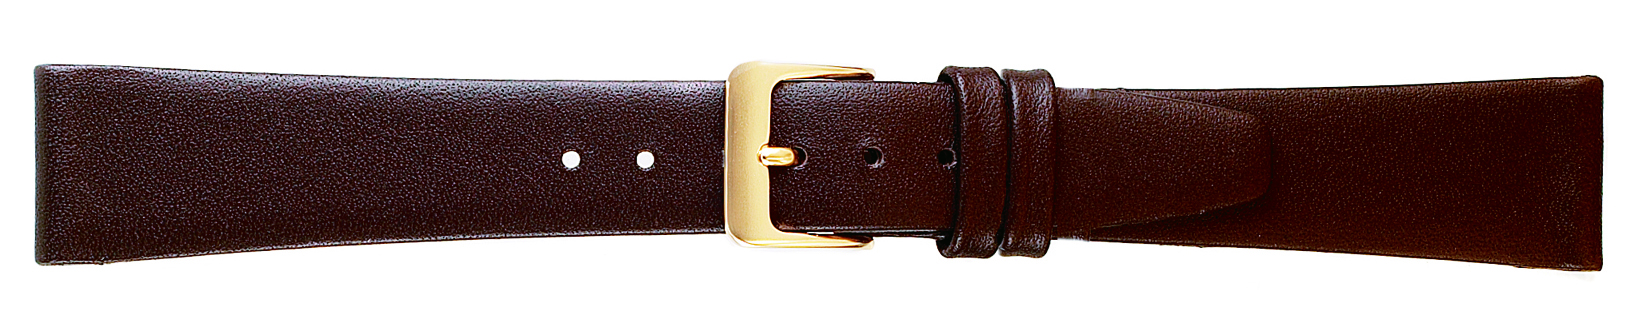 19MM Leather Band Brown Smooth Calf-0